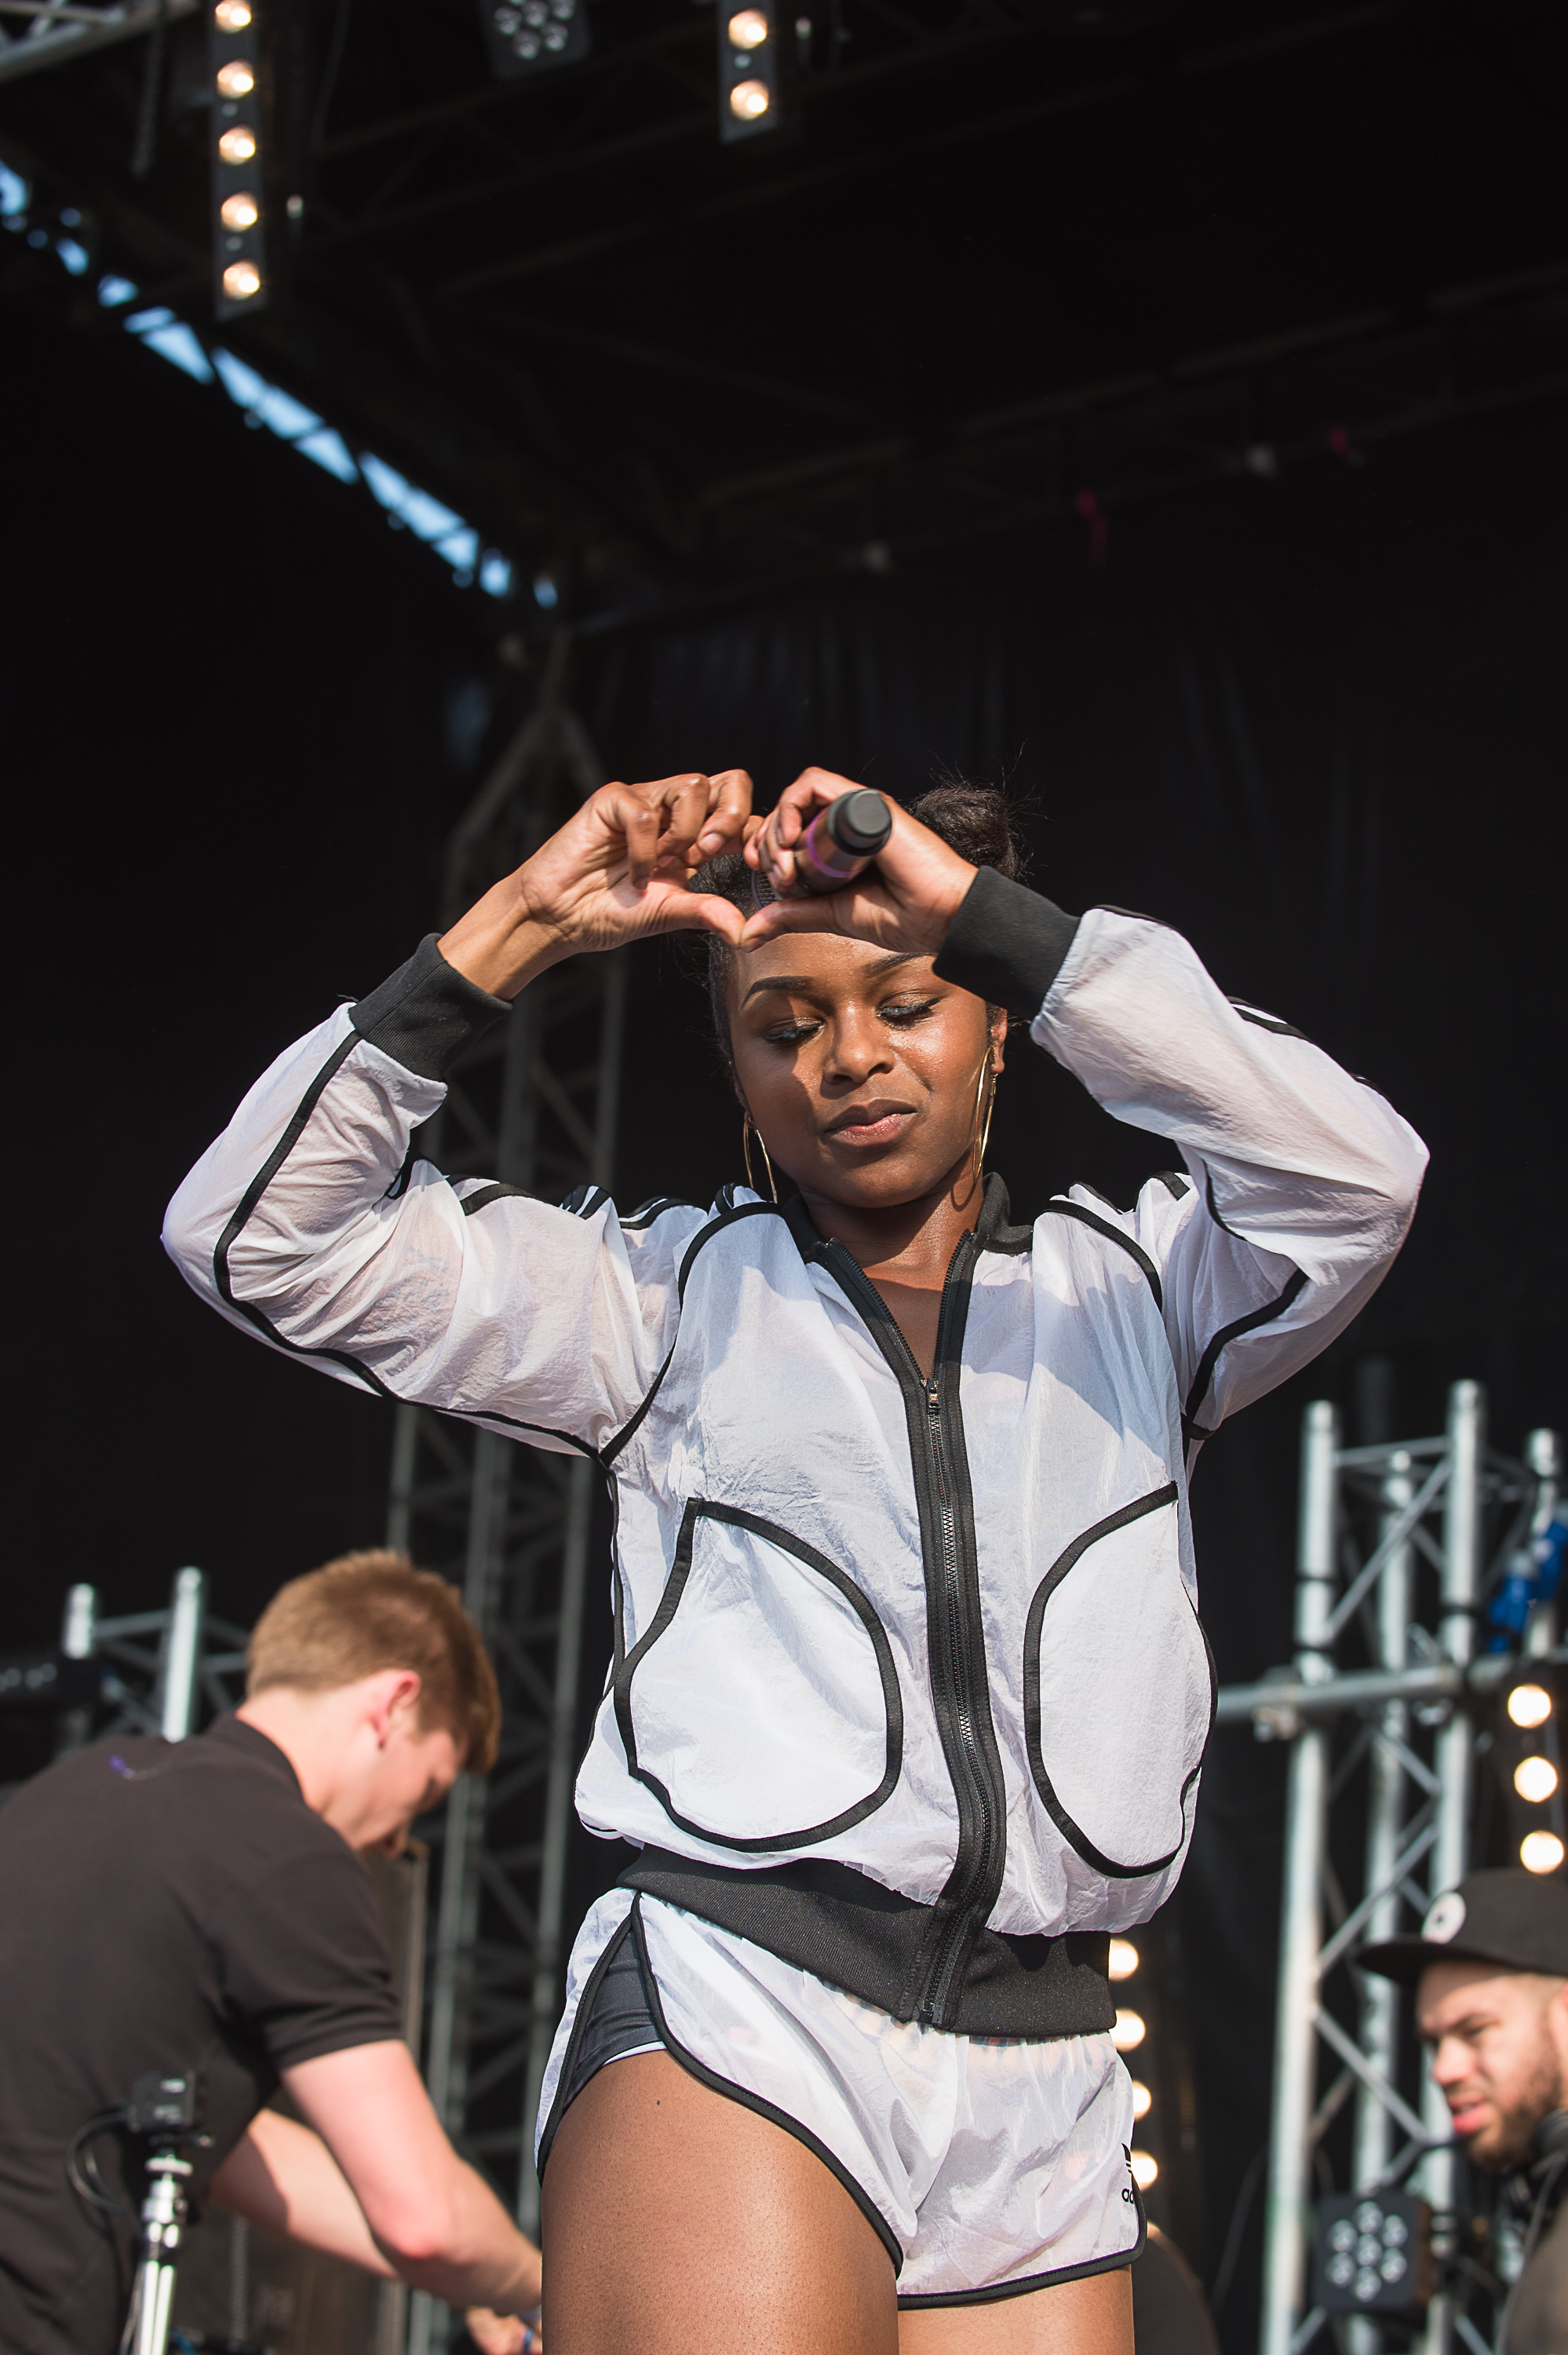 Nadia Rose play at Rinse   Born & Bred Festival 2016 in Haggerston Park - East London